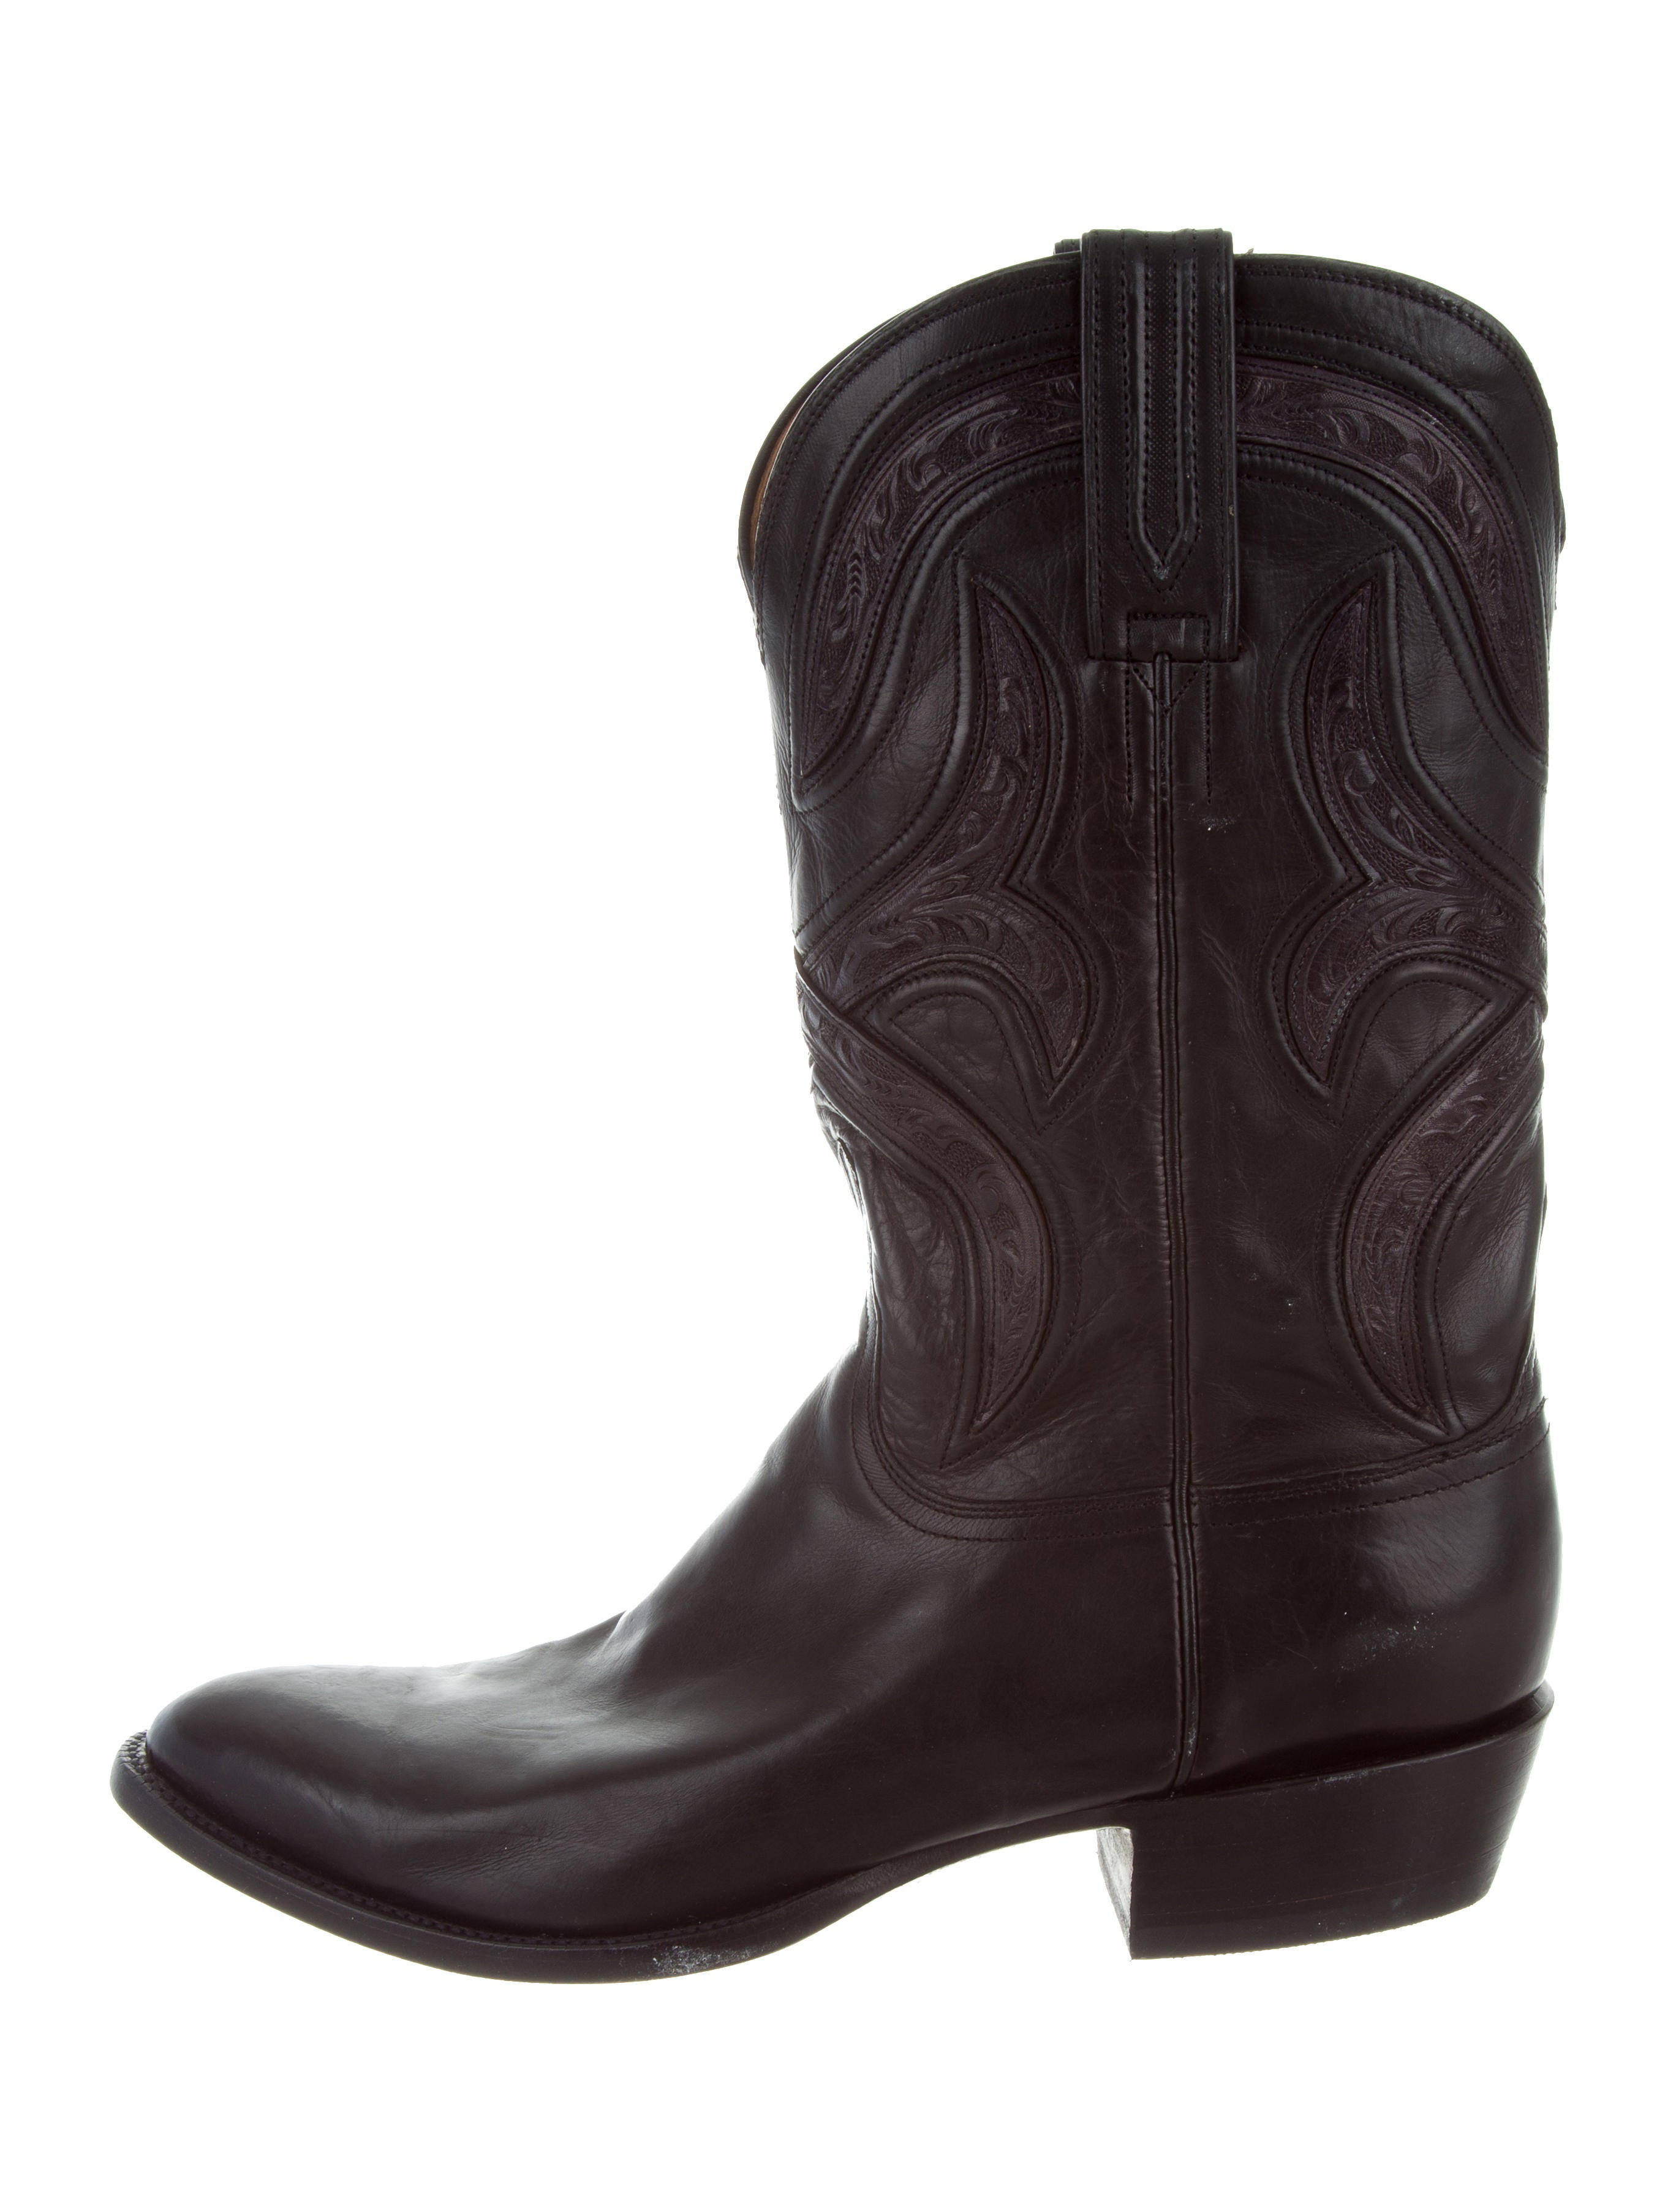 Lucchese Western Leather Boots Shoes Lcc20056 The